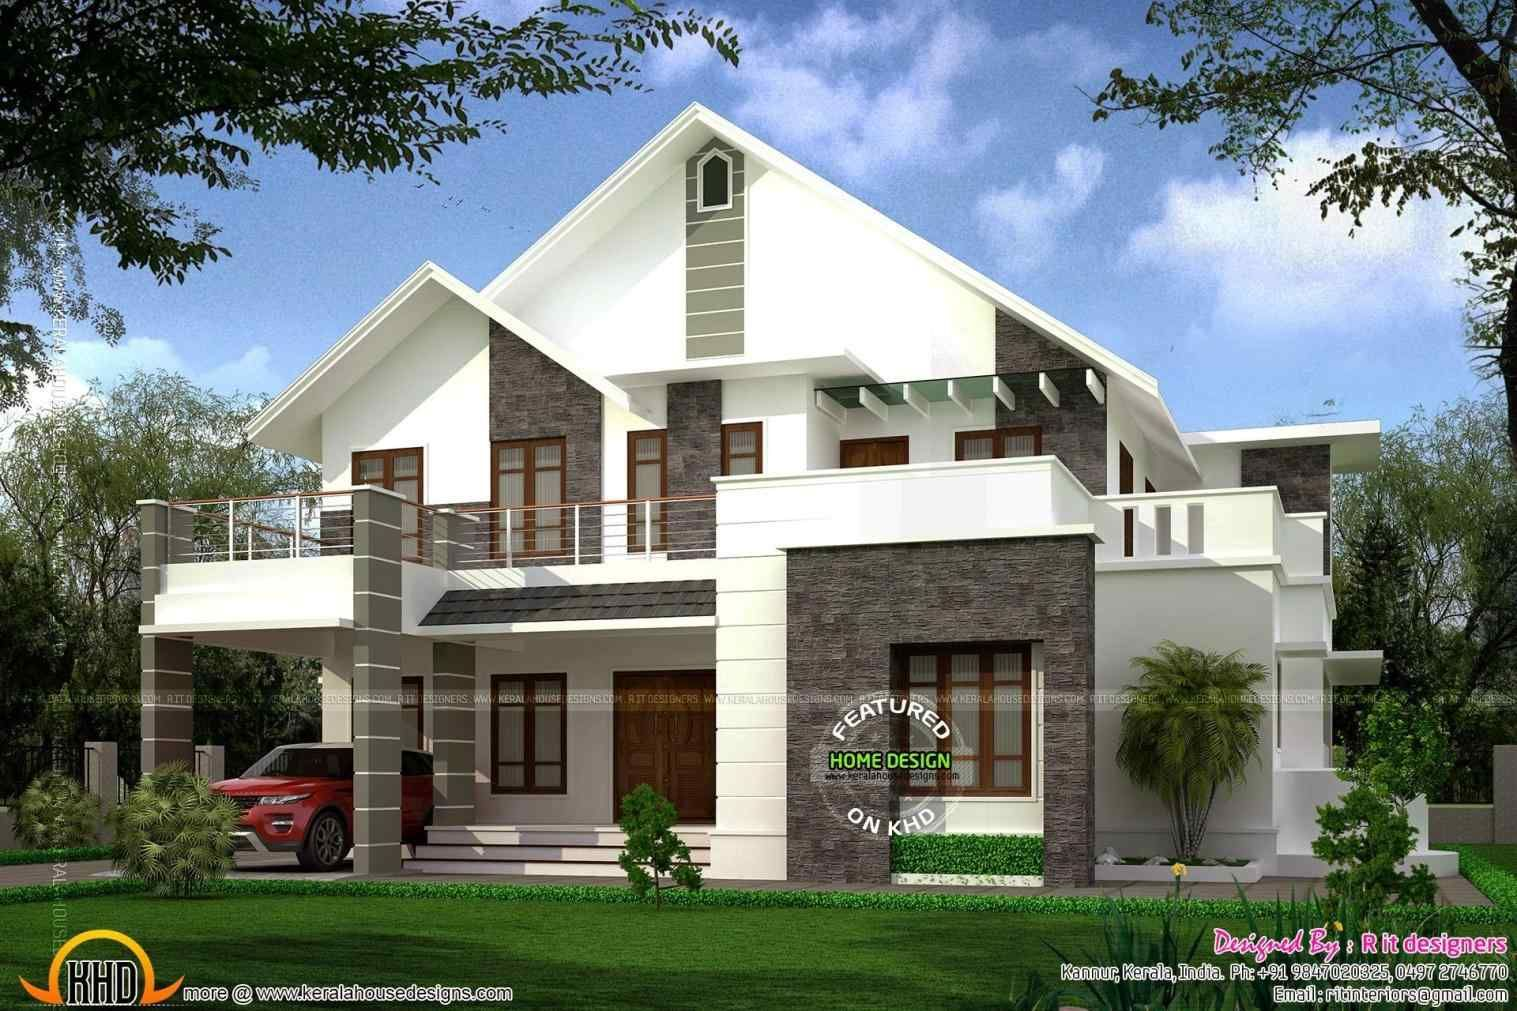 Pitched Roof Designs Home Roof Ideas Roof Design Kerala House Design Kerala Houses